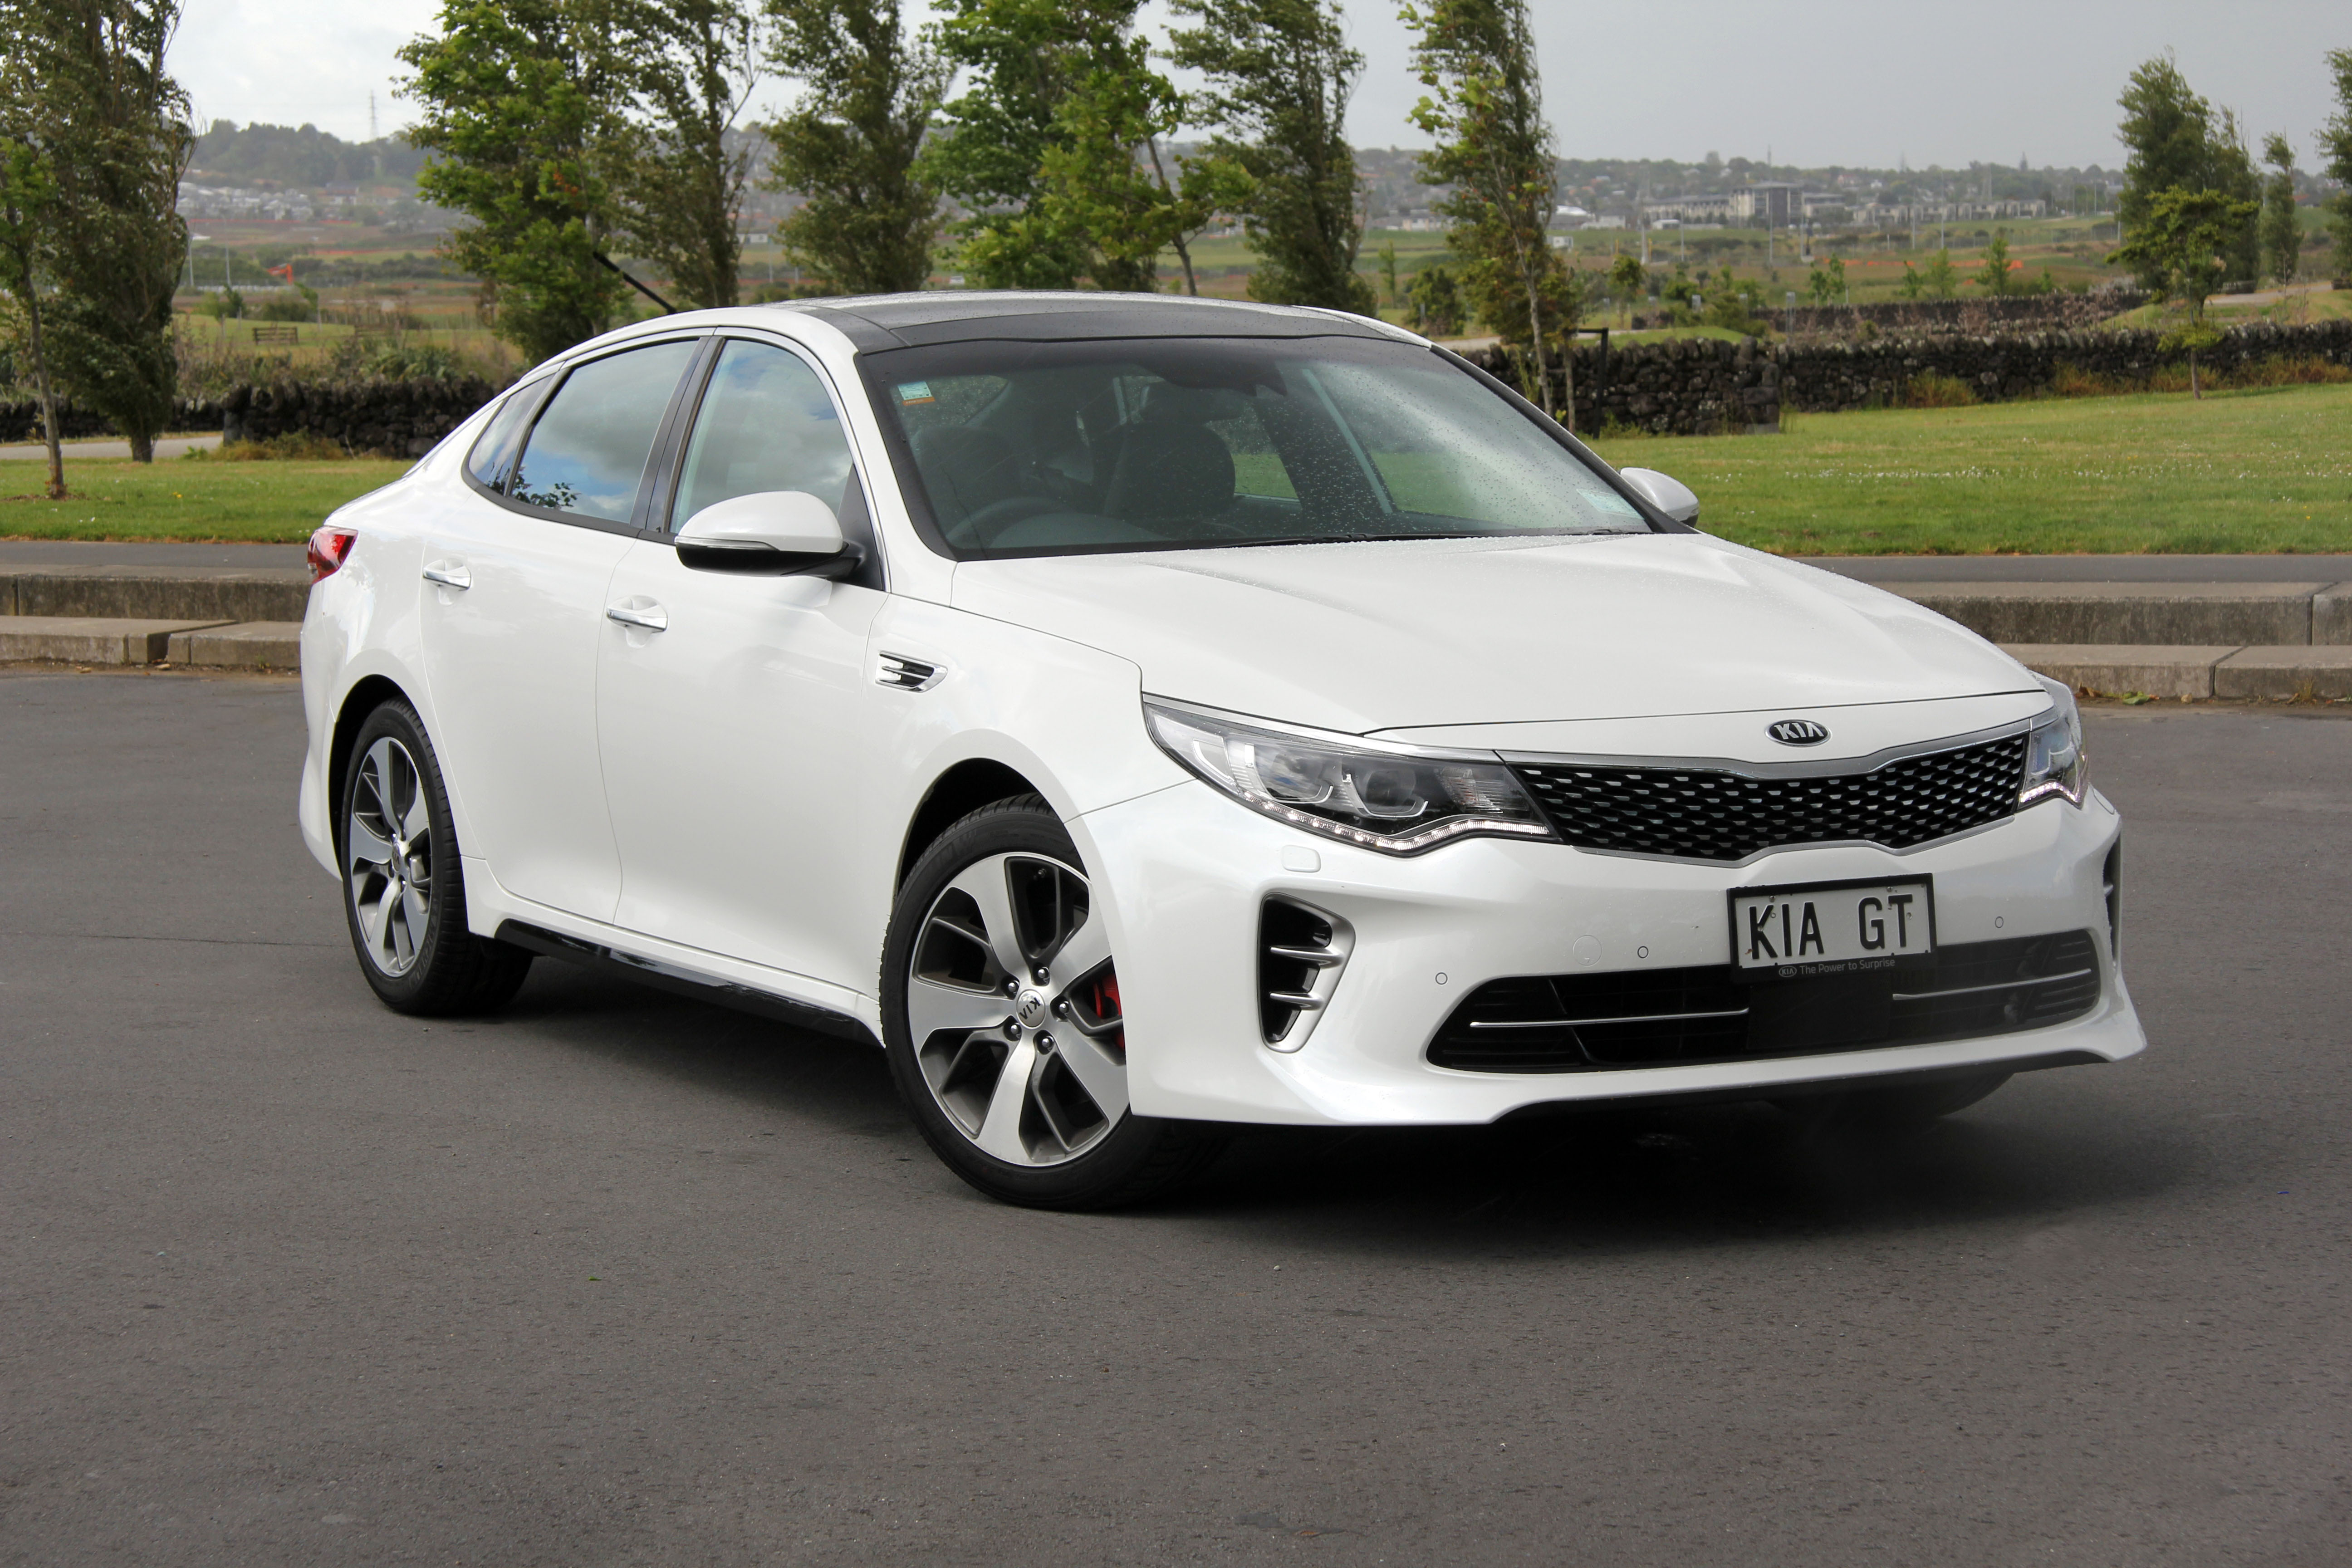 kia optima gt revs up in new zealand new suvs hybrids cars special offers kia new zealand. Black Bedroom Furniture Sets. Home Design Ideas